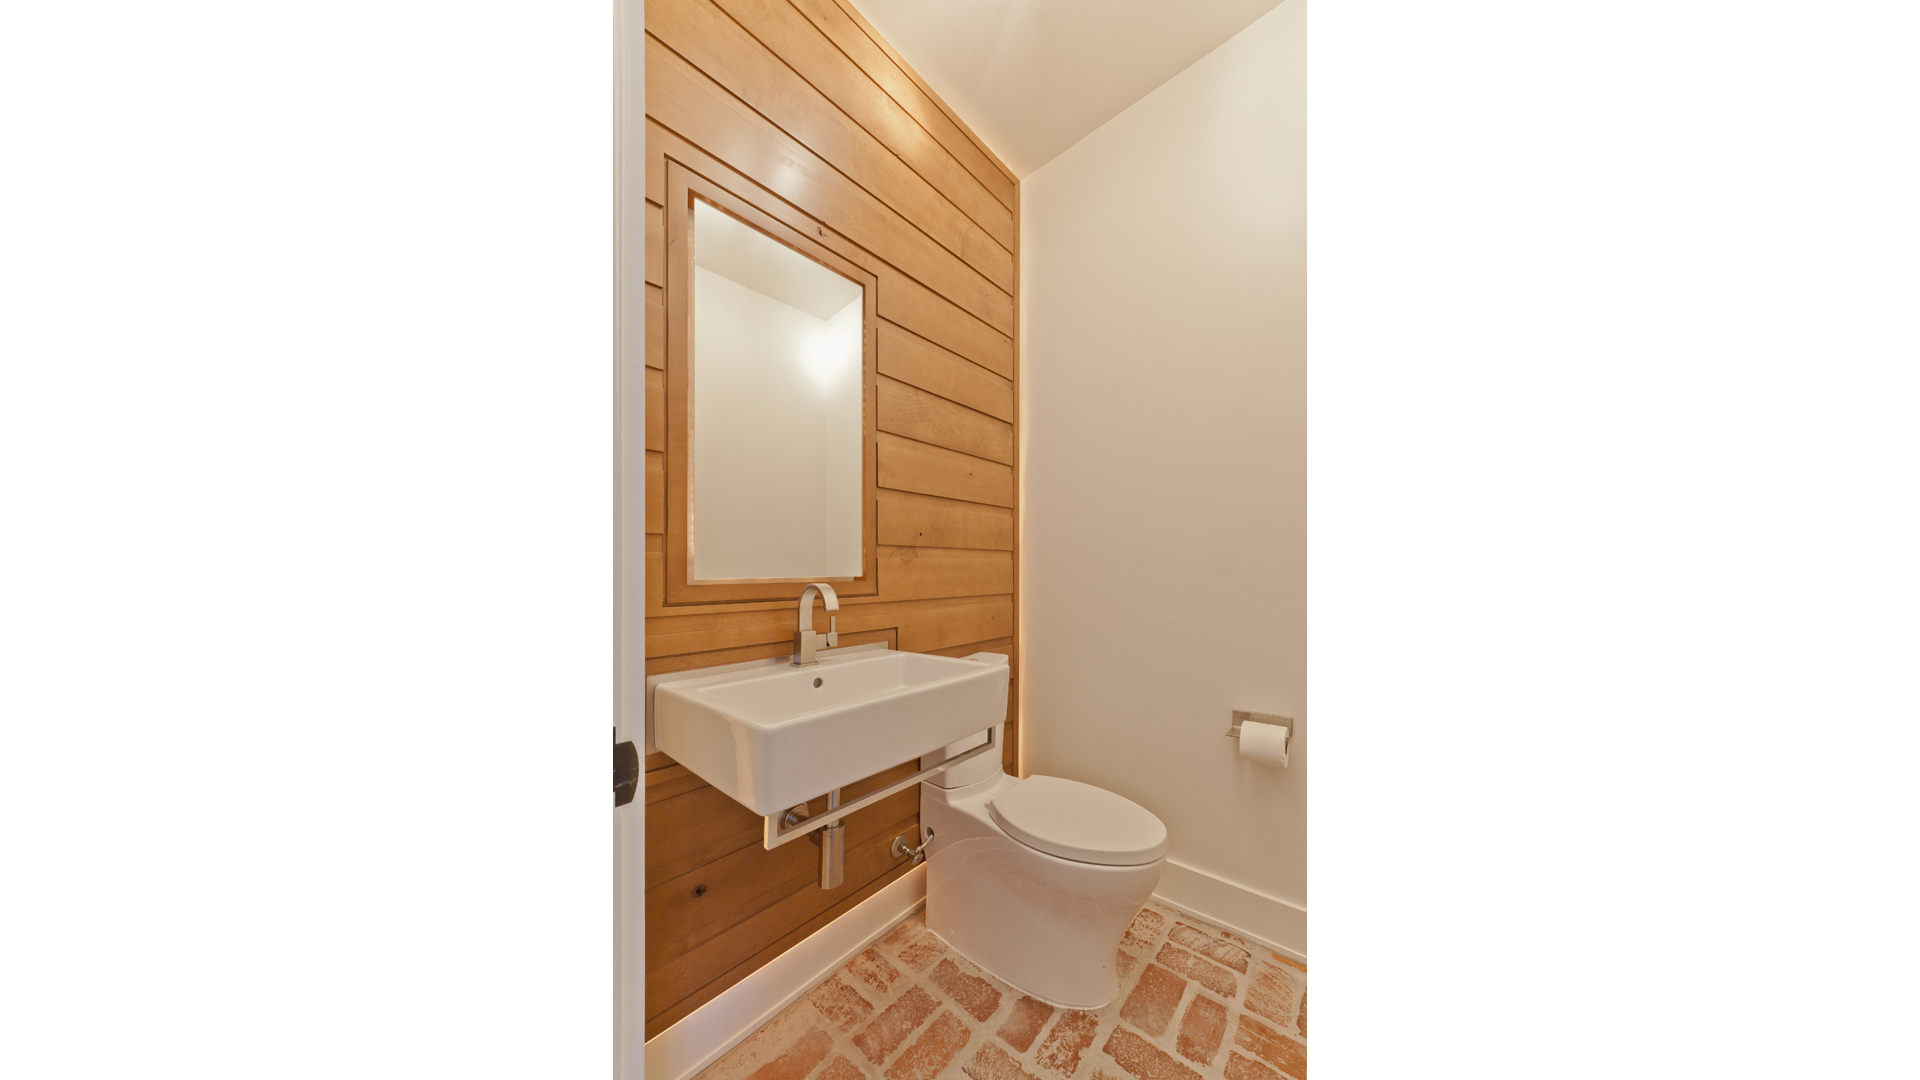 Scandinavian Rustic Cabin - Powder Room West - Christopher Short, Architect, Indianapolis, HAUS Architecture